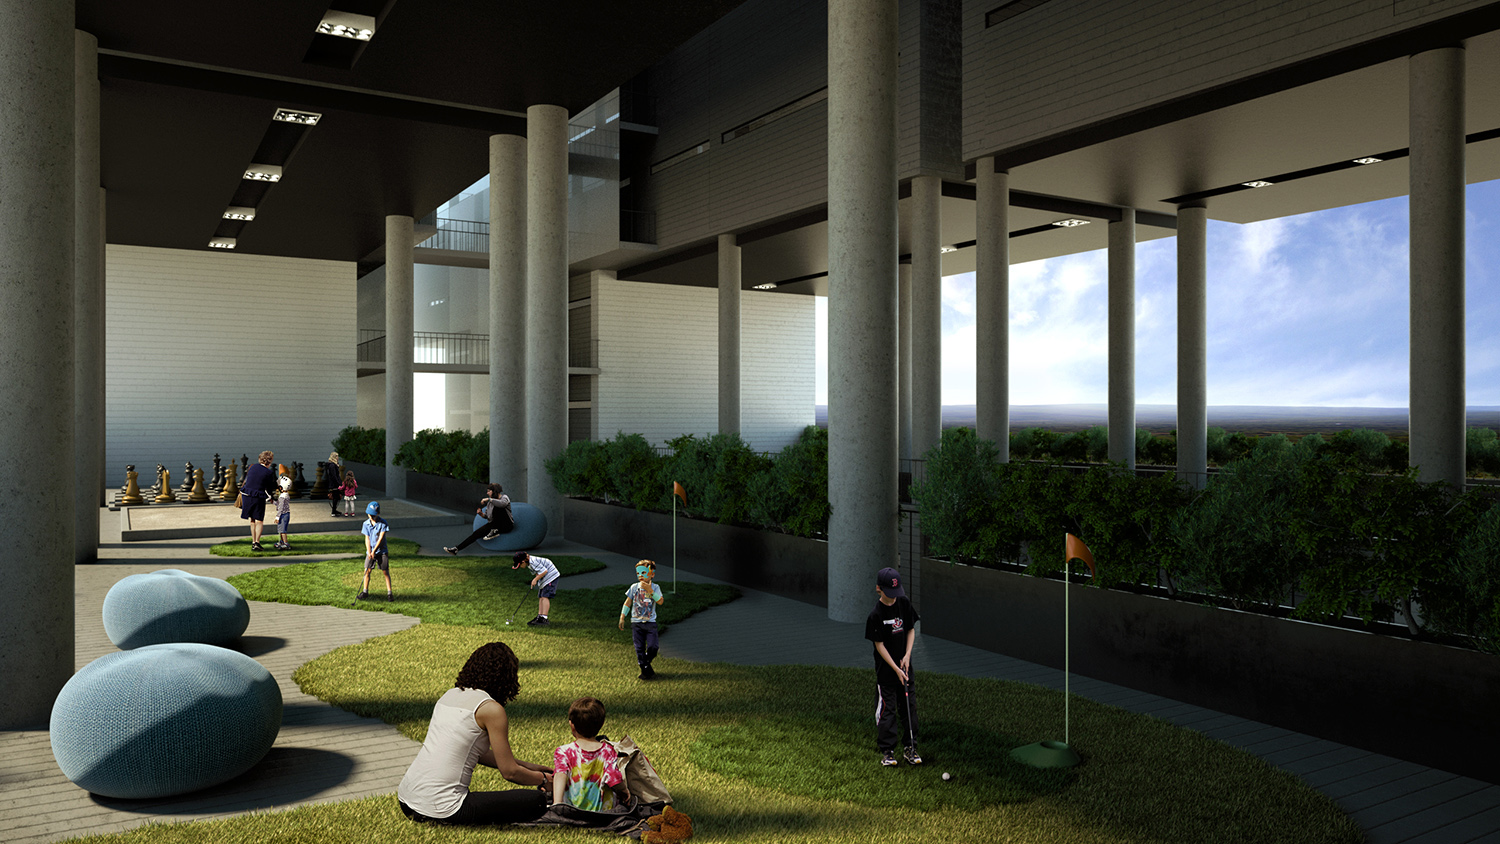 View of an open amenity area of the building BLOOM RENDER